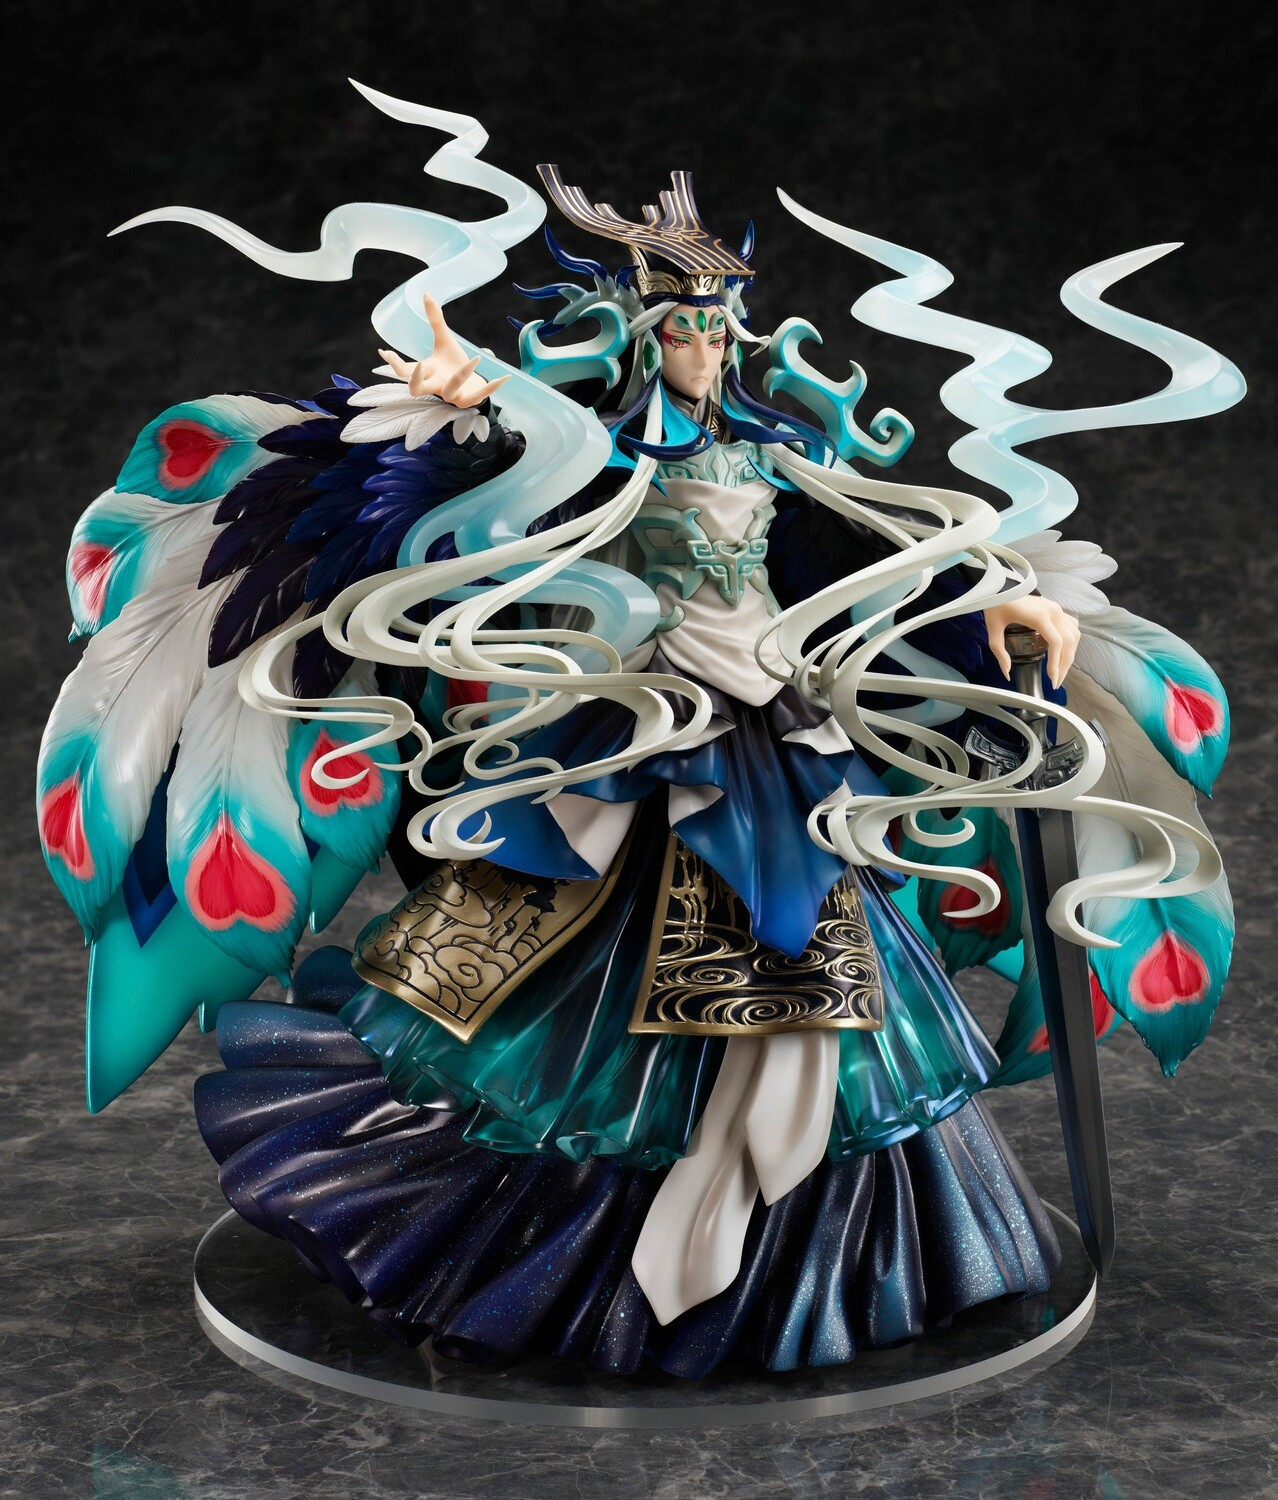 PRE-ORDER Fate/Grand Order Ruler/Qin 1/7 Scale Figure